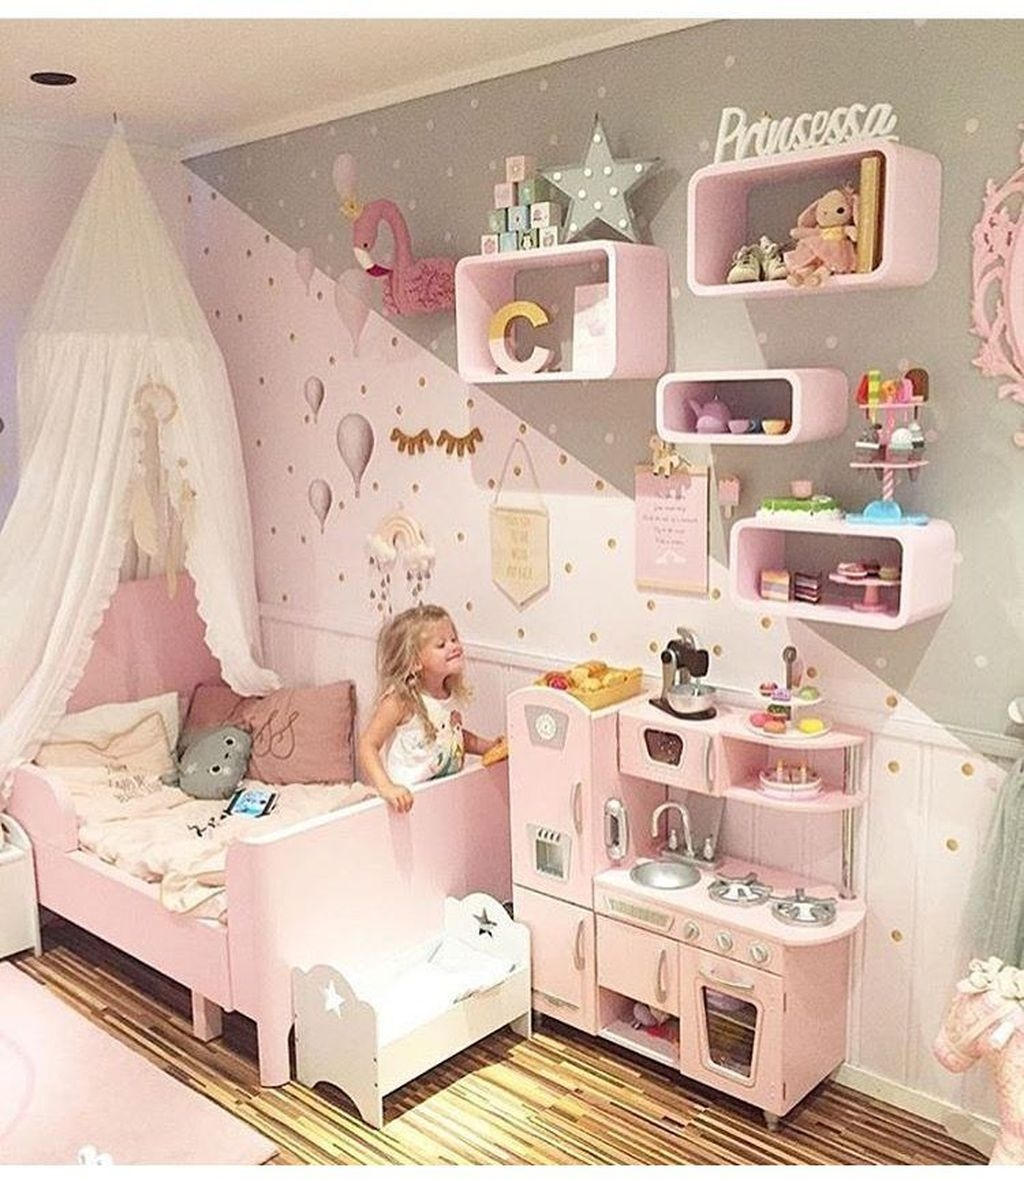 Inspiring Kids Room Design Ideas 21